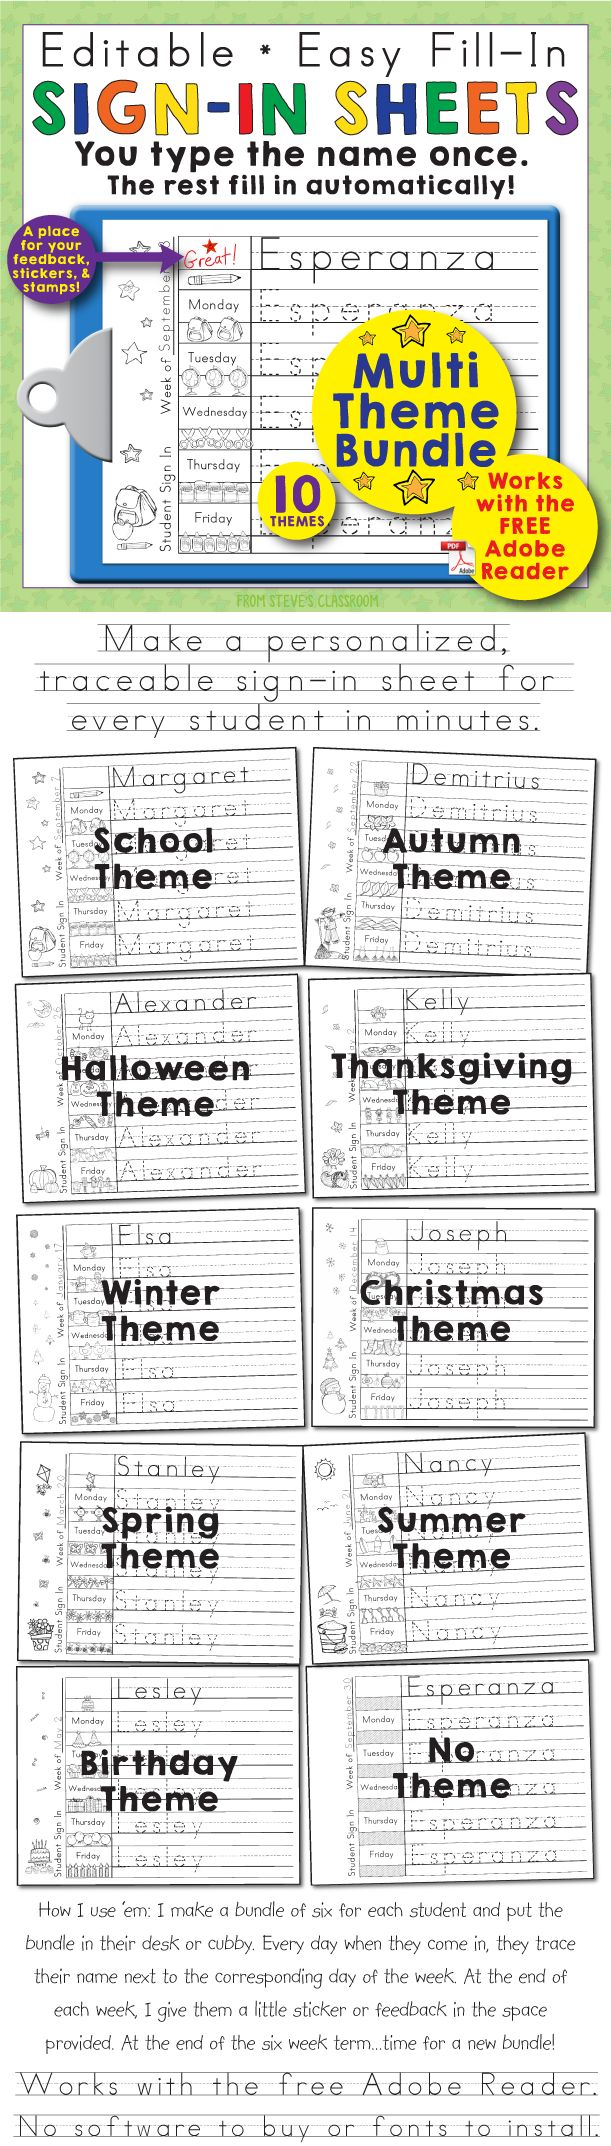 Just in time for back to school! Editable, personalized, themed sign-in sheets that will help your students learn to spell and write their names, memorize the days of the week, and count! The bundle has ten themed sign-in sheets. Traceable sign-in sheets for every season, occasion, student interest, or classroom decor in one convenient download! Autumn, Halloween, Thanksgiving, Winter,  Christmas, Spring, Summer, School, Birthday, Beach and more added weekly!~